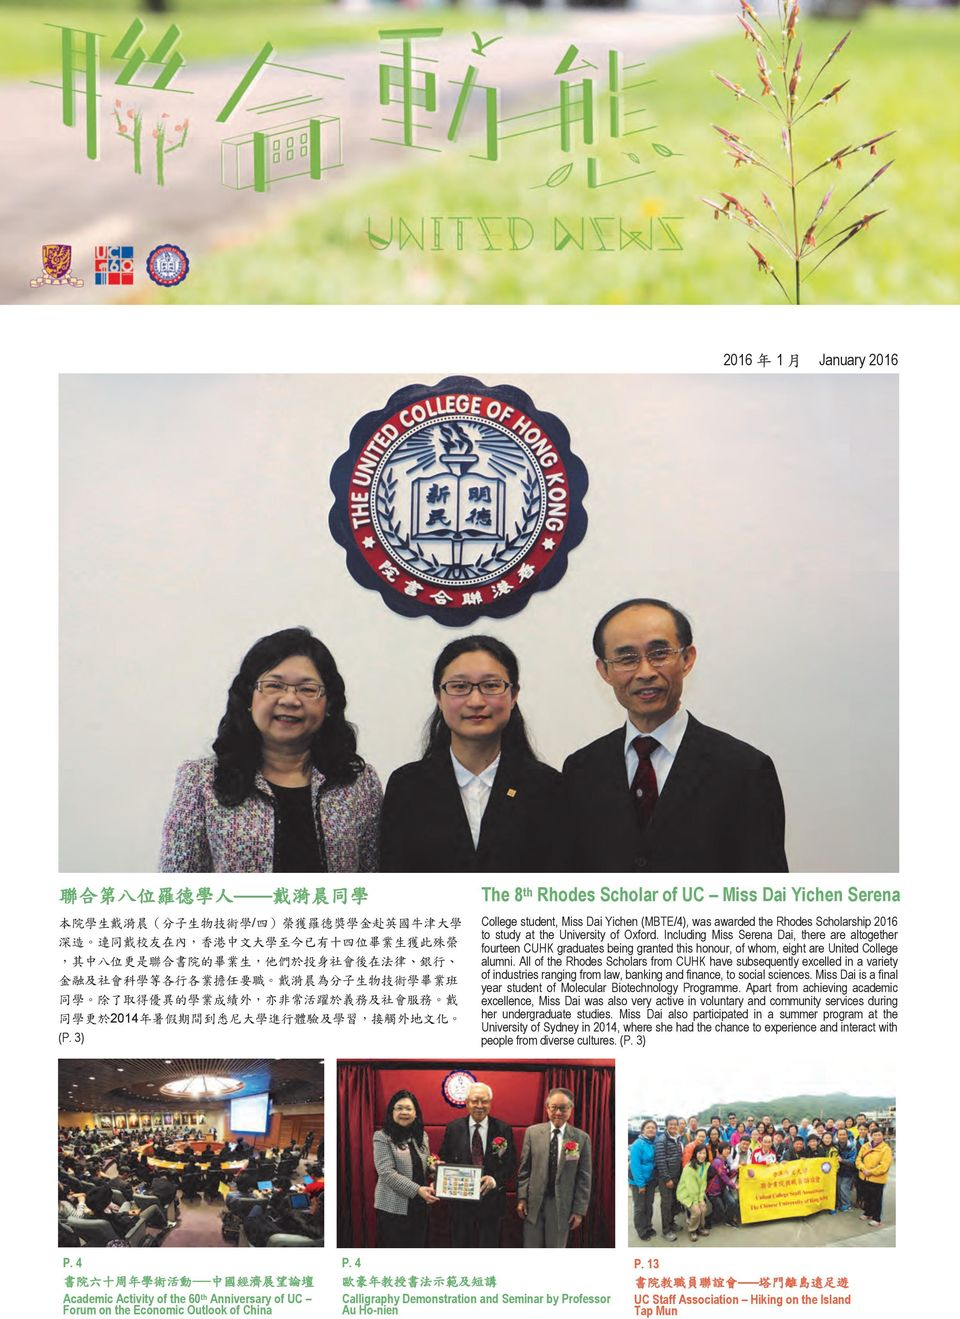 外 地 文 化 (P. 3) The 8 th Rhodes Scholar of UC Miss Dai Yichen Serena College student, Miss Dai Yichen (MBTE/4), was awarded the Rhodes Scholarship 2016 to study at the University of Oxford.